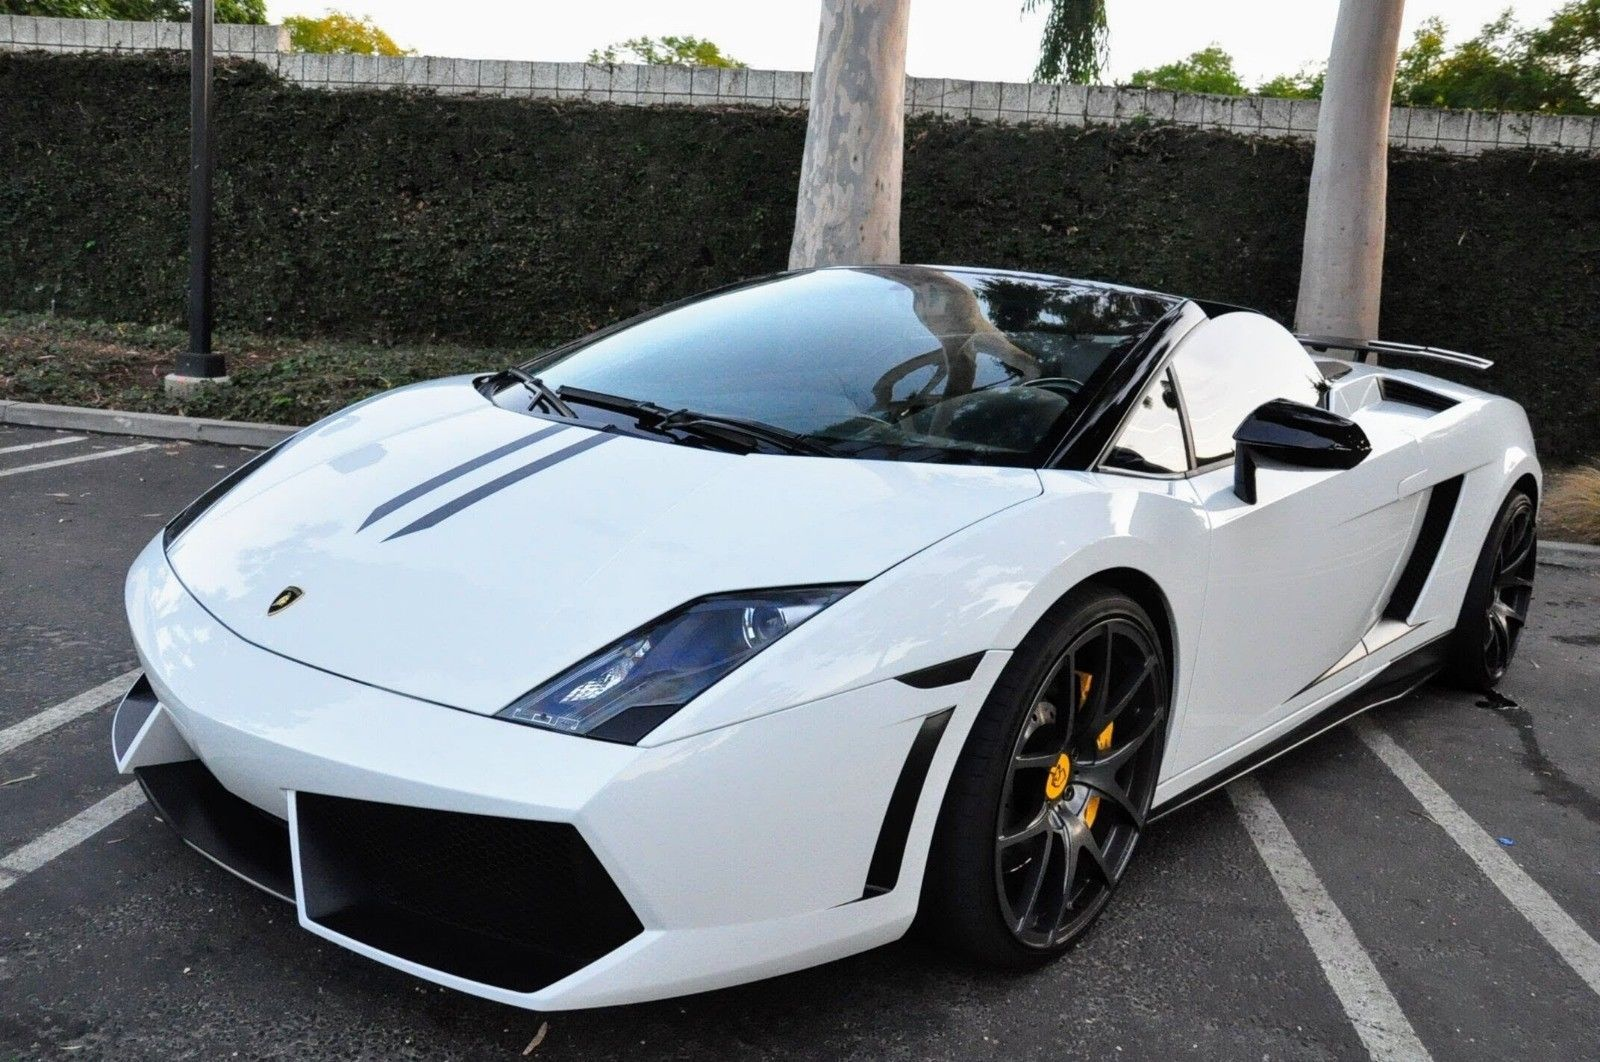 Exceptional Cool Great 2012 Lamborghini Gallardo 550 2 2012 Lamborghini Gallardo 550 2  2017 2018